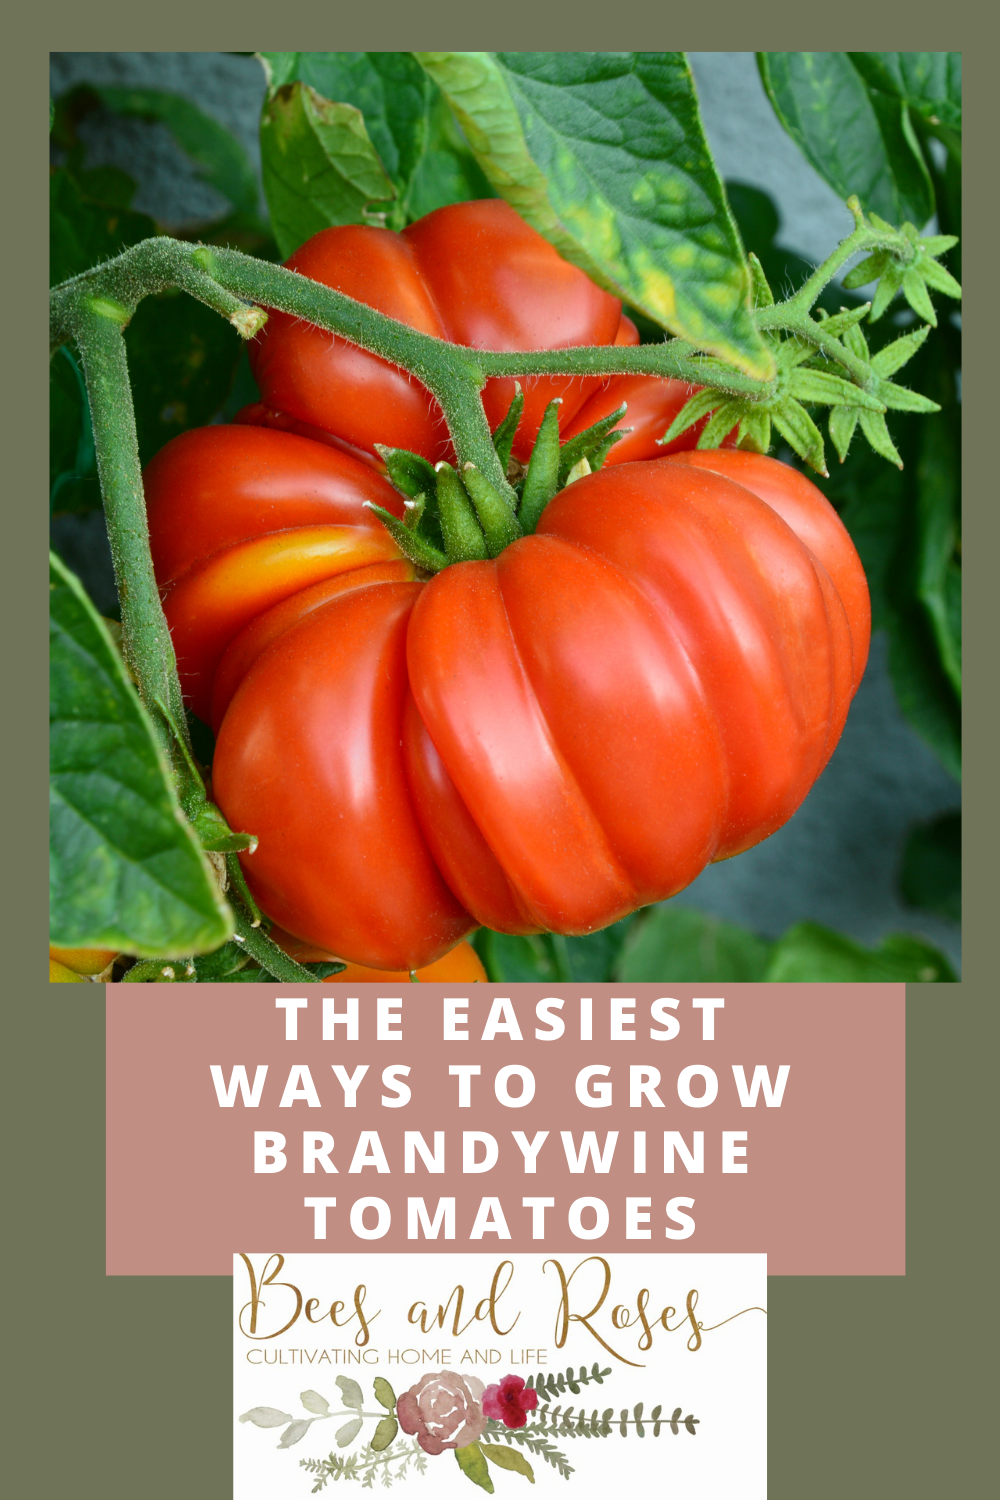 Beesandroses.com can turn your garden from drab to fab! Take your skills to the next level and learn how to grow something new (and do it well, too). Find out what you should know before growing brandywine tomatoes!